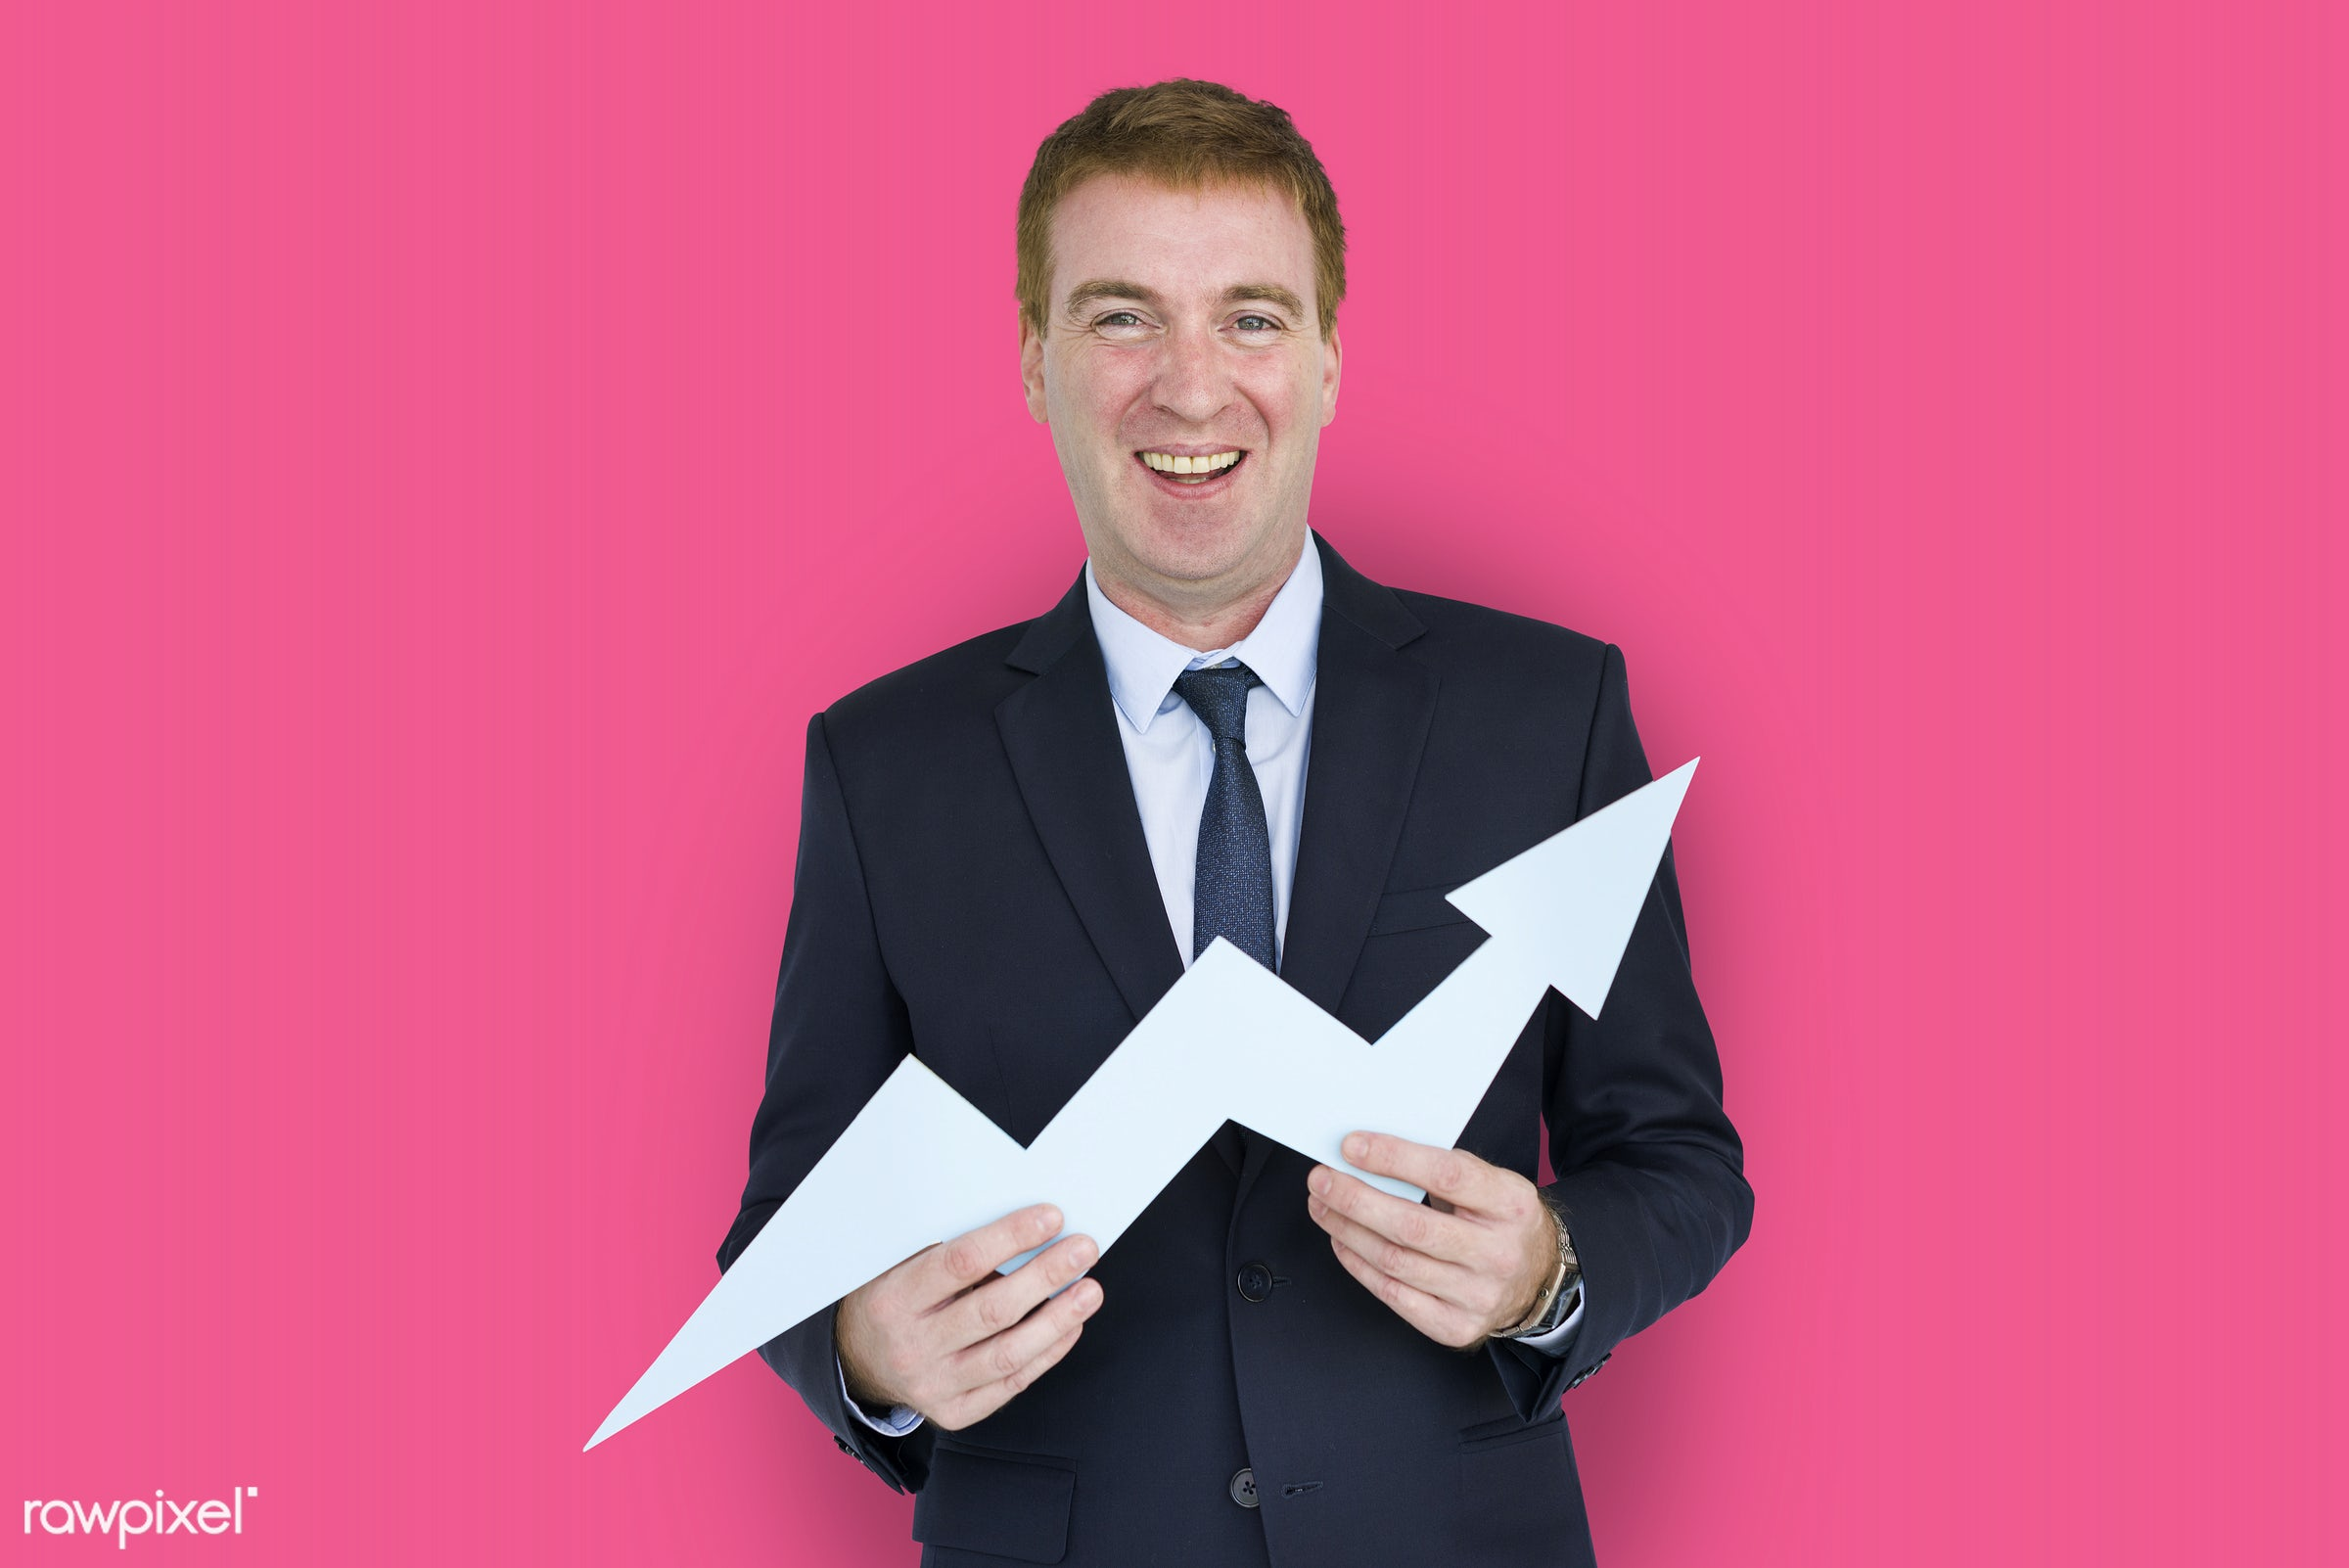 expression, studio, person, business wear, holding, arrow, improve, people, business, caucasian, graph, happy, smile,...